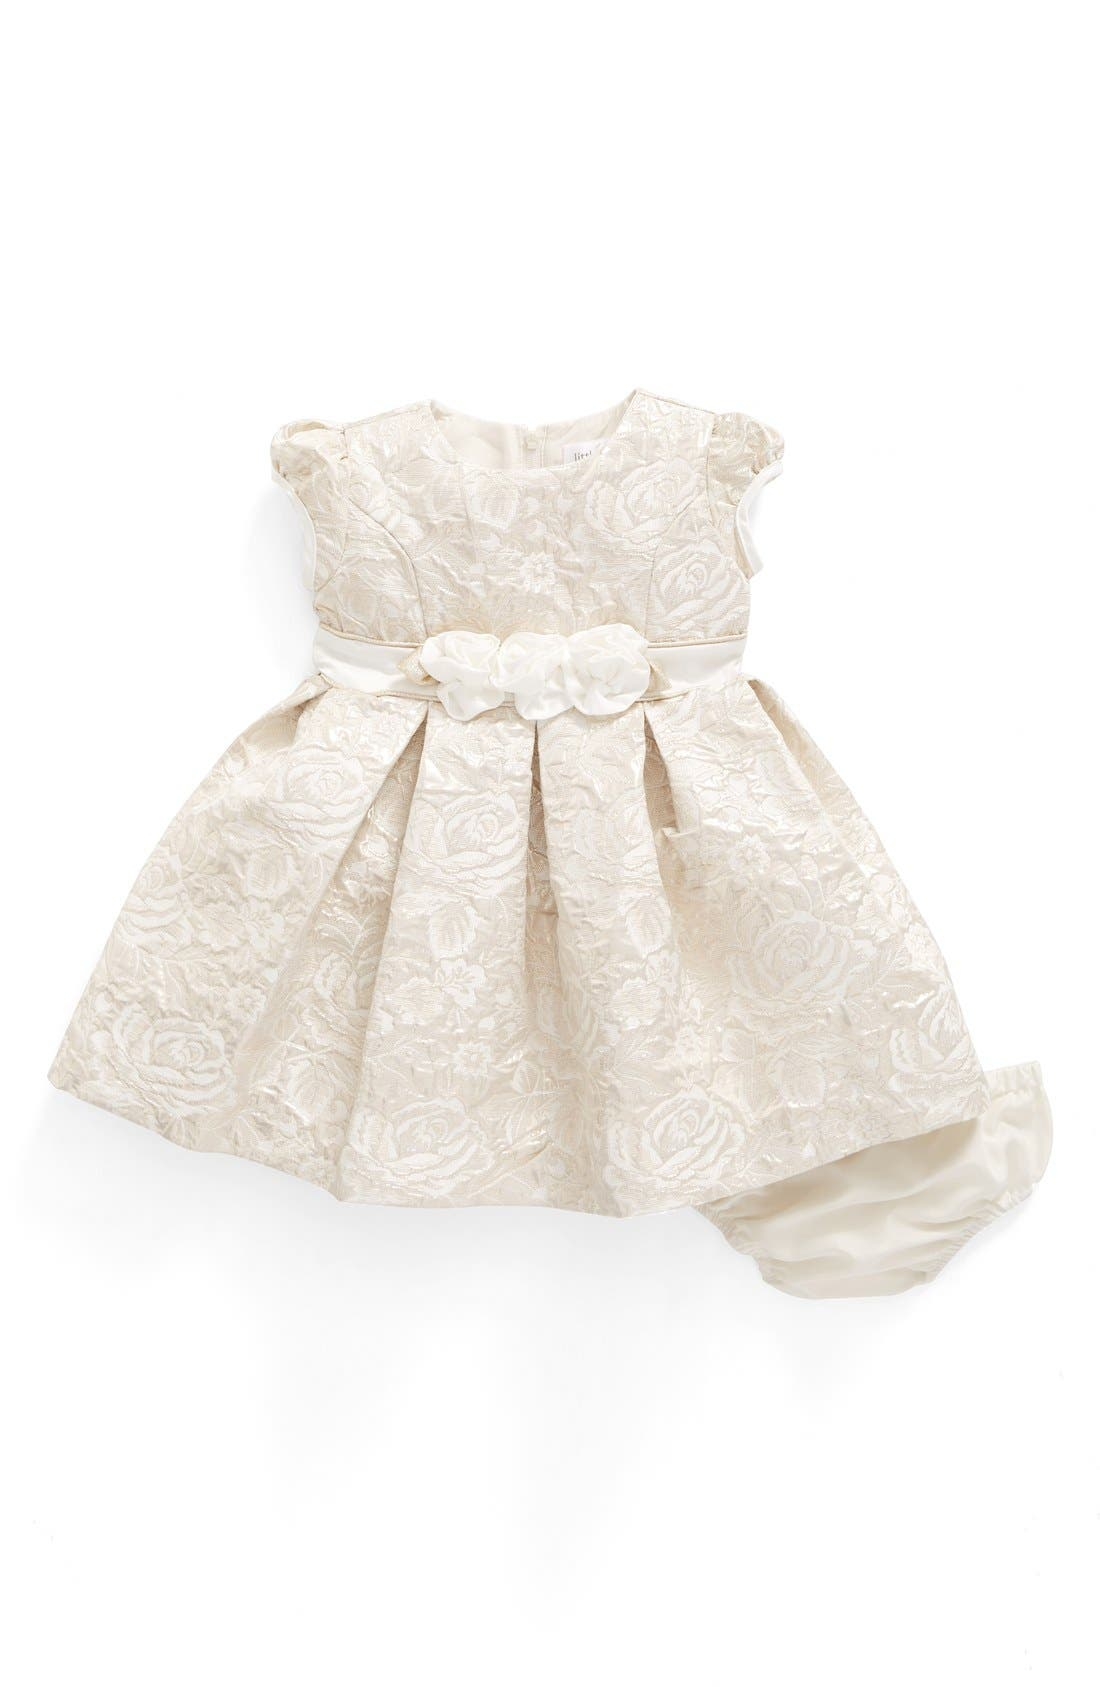 Us Angels Floral Jacquard Dress (Baby Girls)